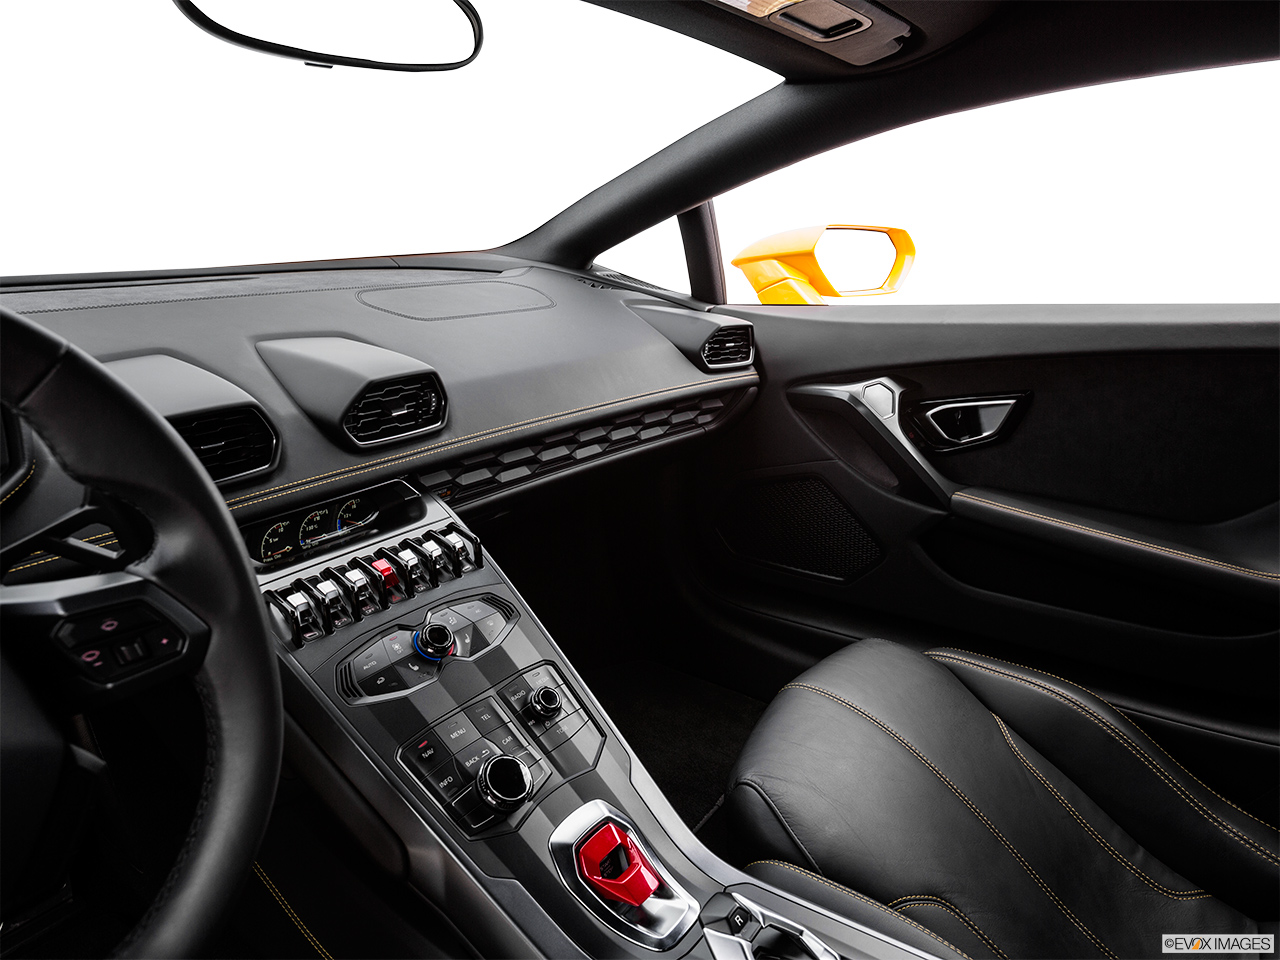 2015 Lamborghini Huracan LP 610-4 Center Console/Passenger Side.